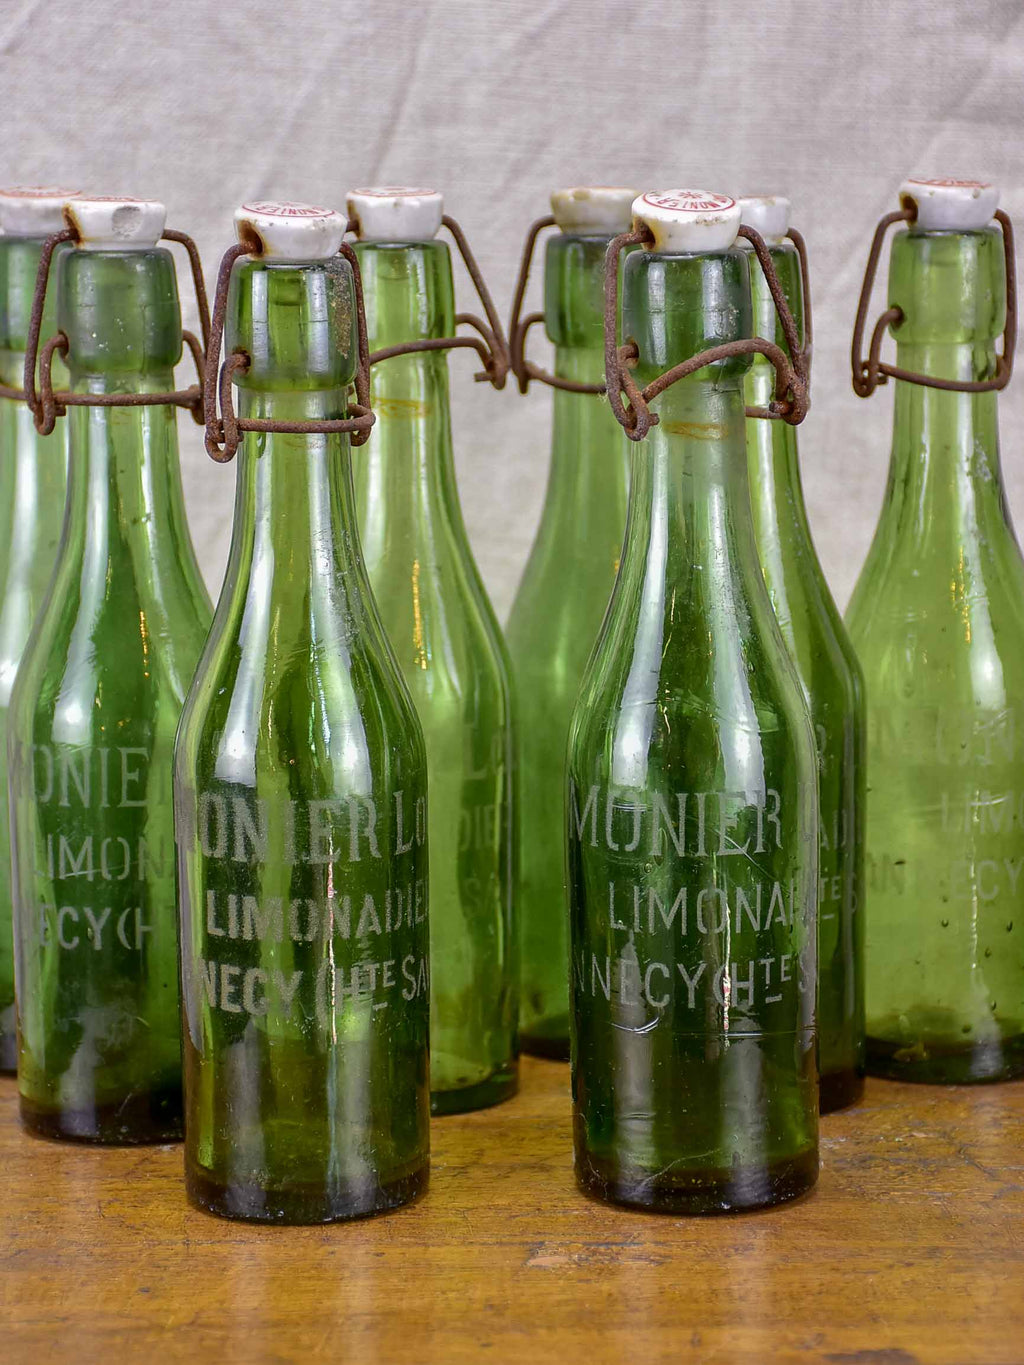 17 antique French lemonade bottles with ceramic stoppers